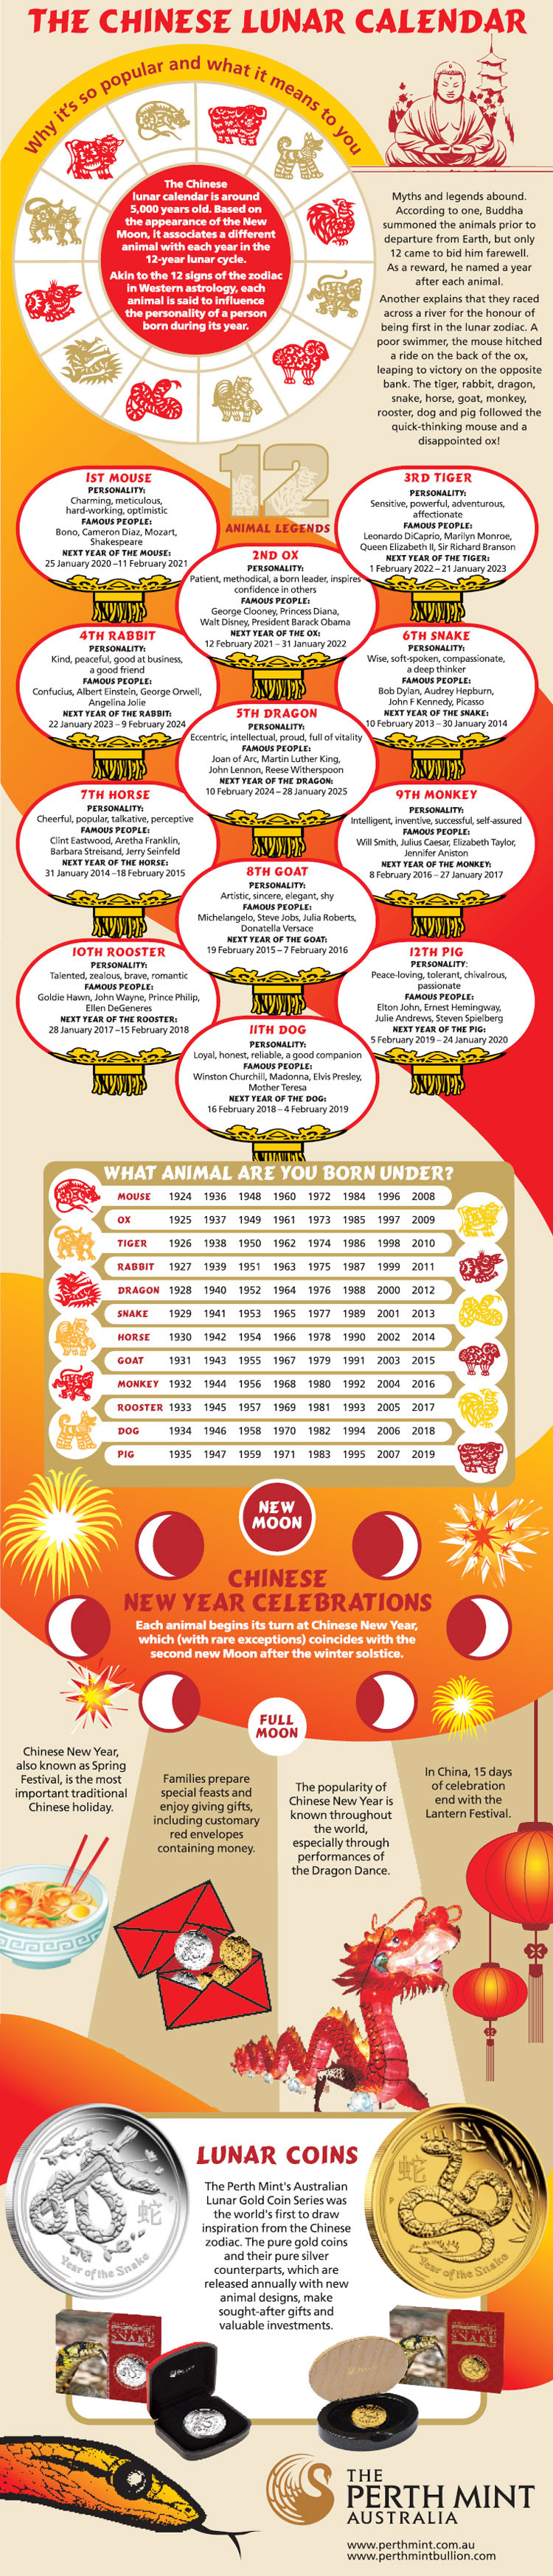 The Chinese Lunar Calendar #infographic